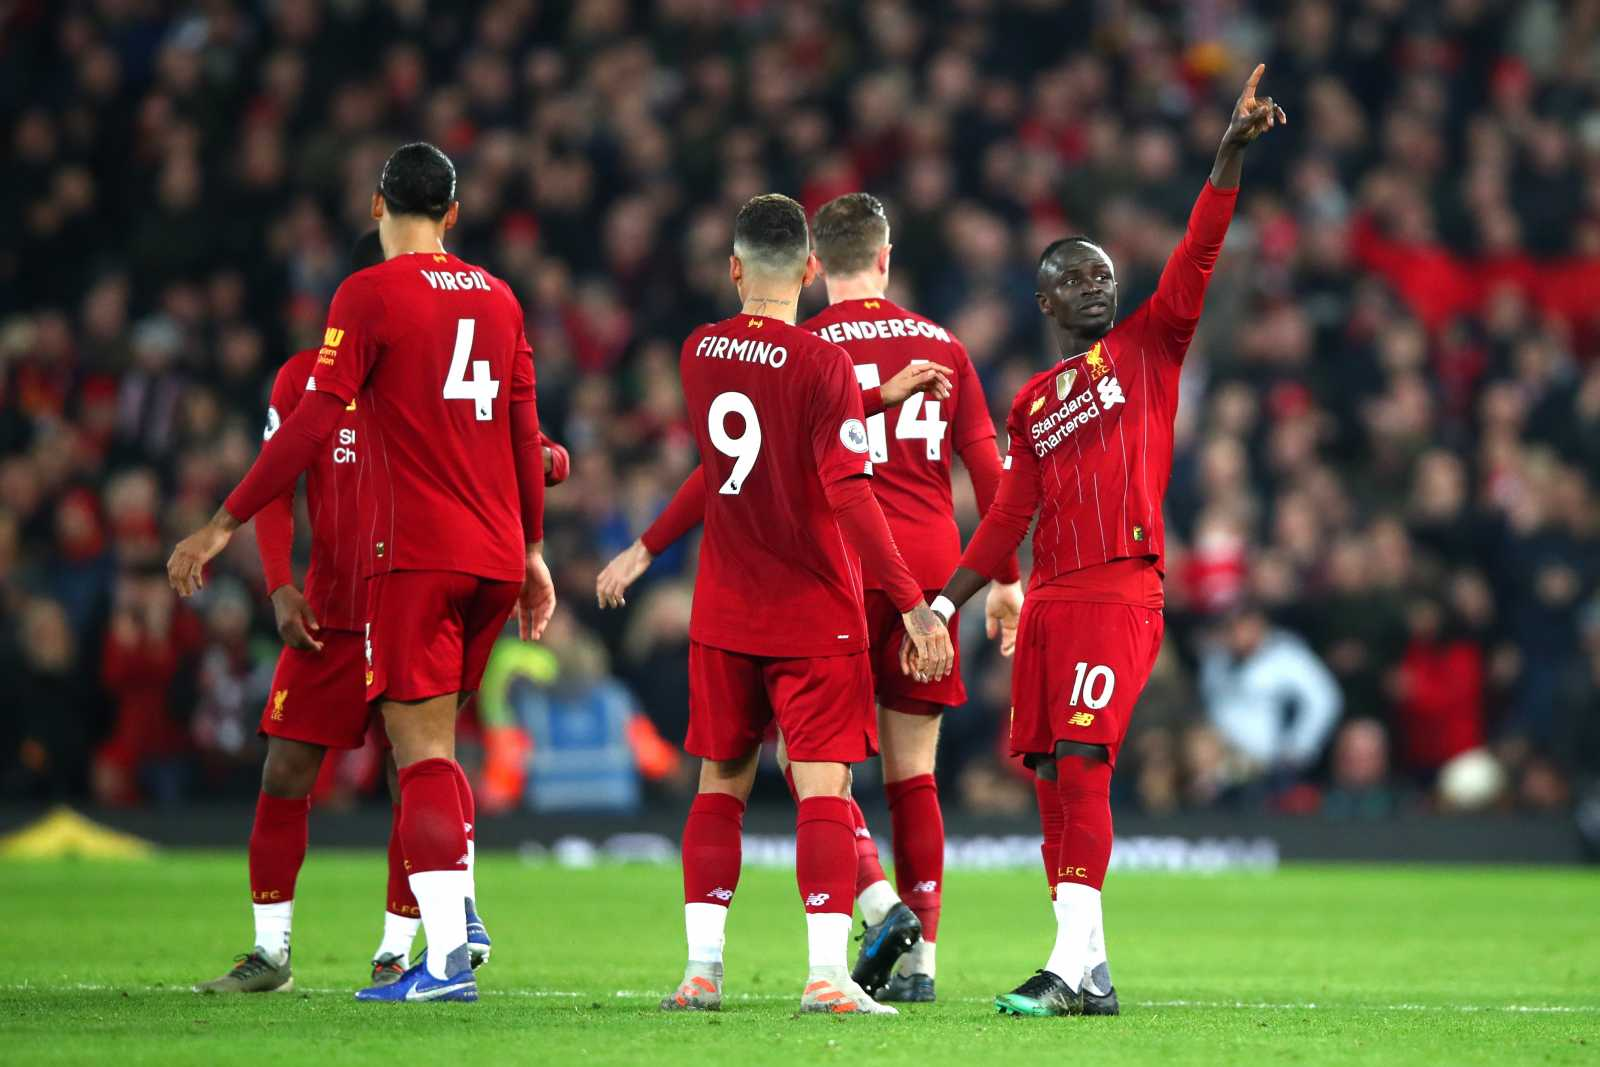 Sadio Mane celebrates with his Liverpool team mates, after scoring the winning goal in the 1-0 win over Wolves. which now sees Liverpool 13 points clear at the top of the Premier League